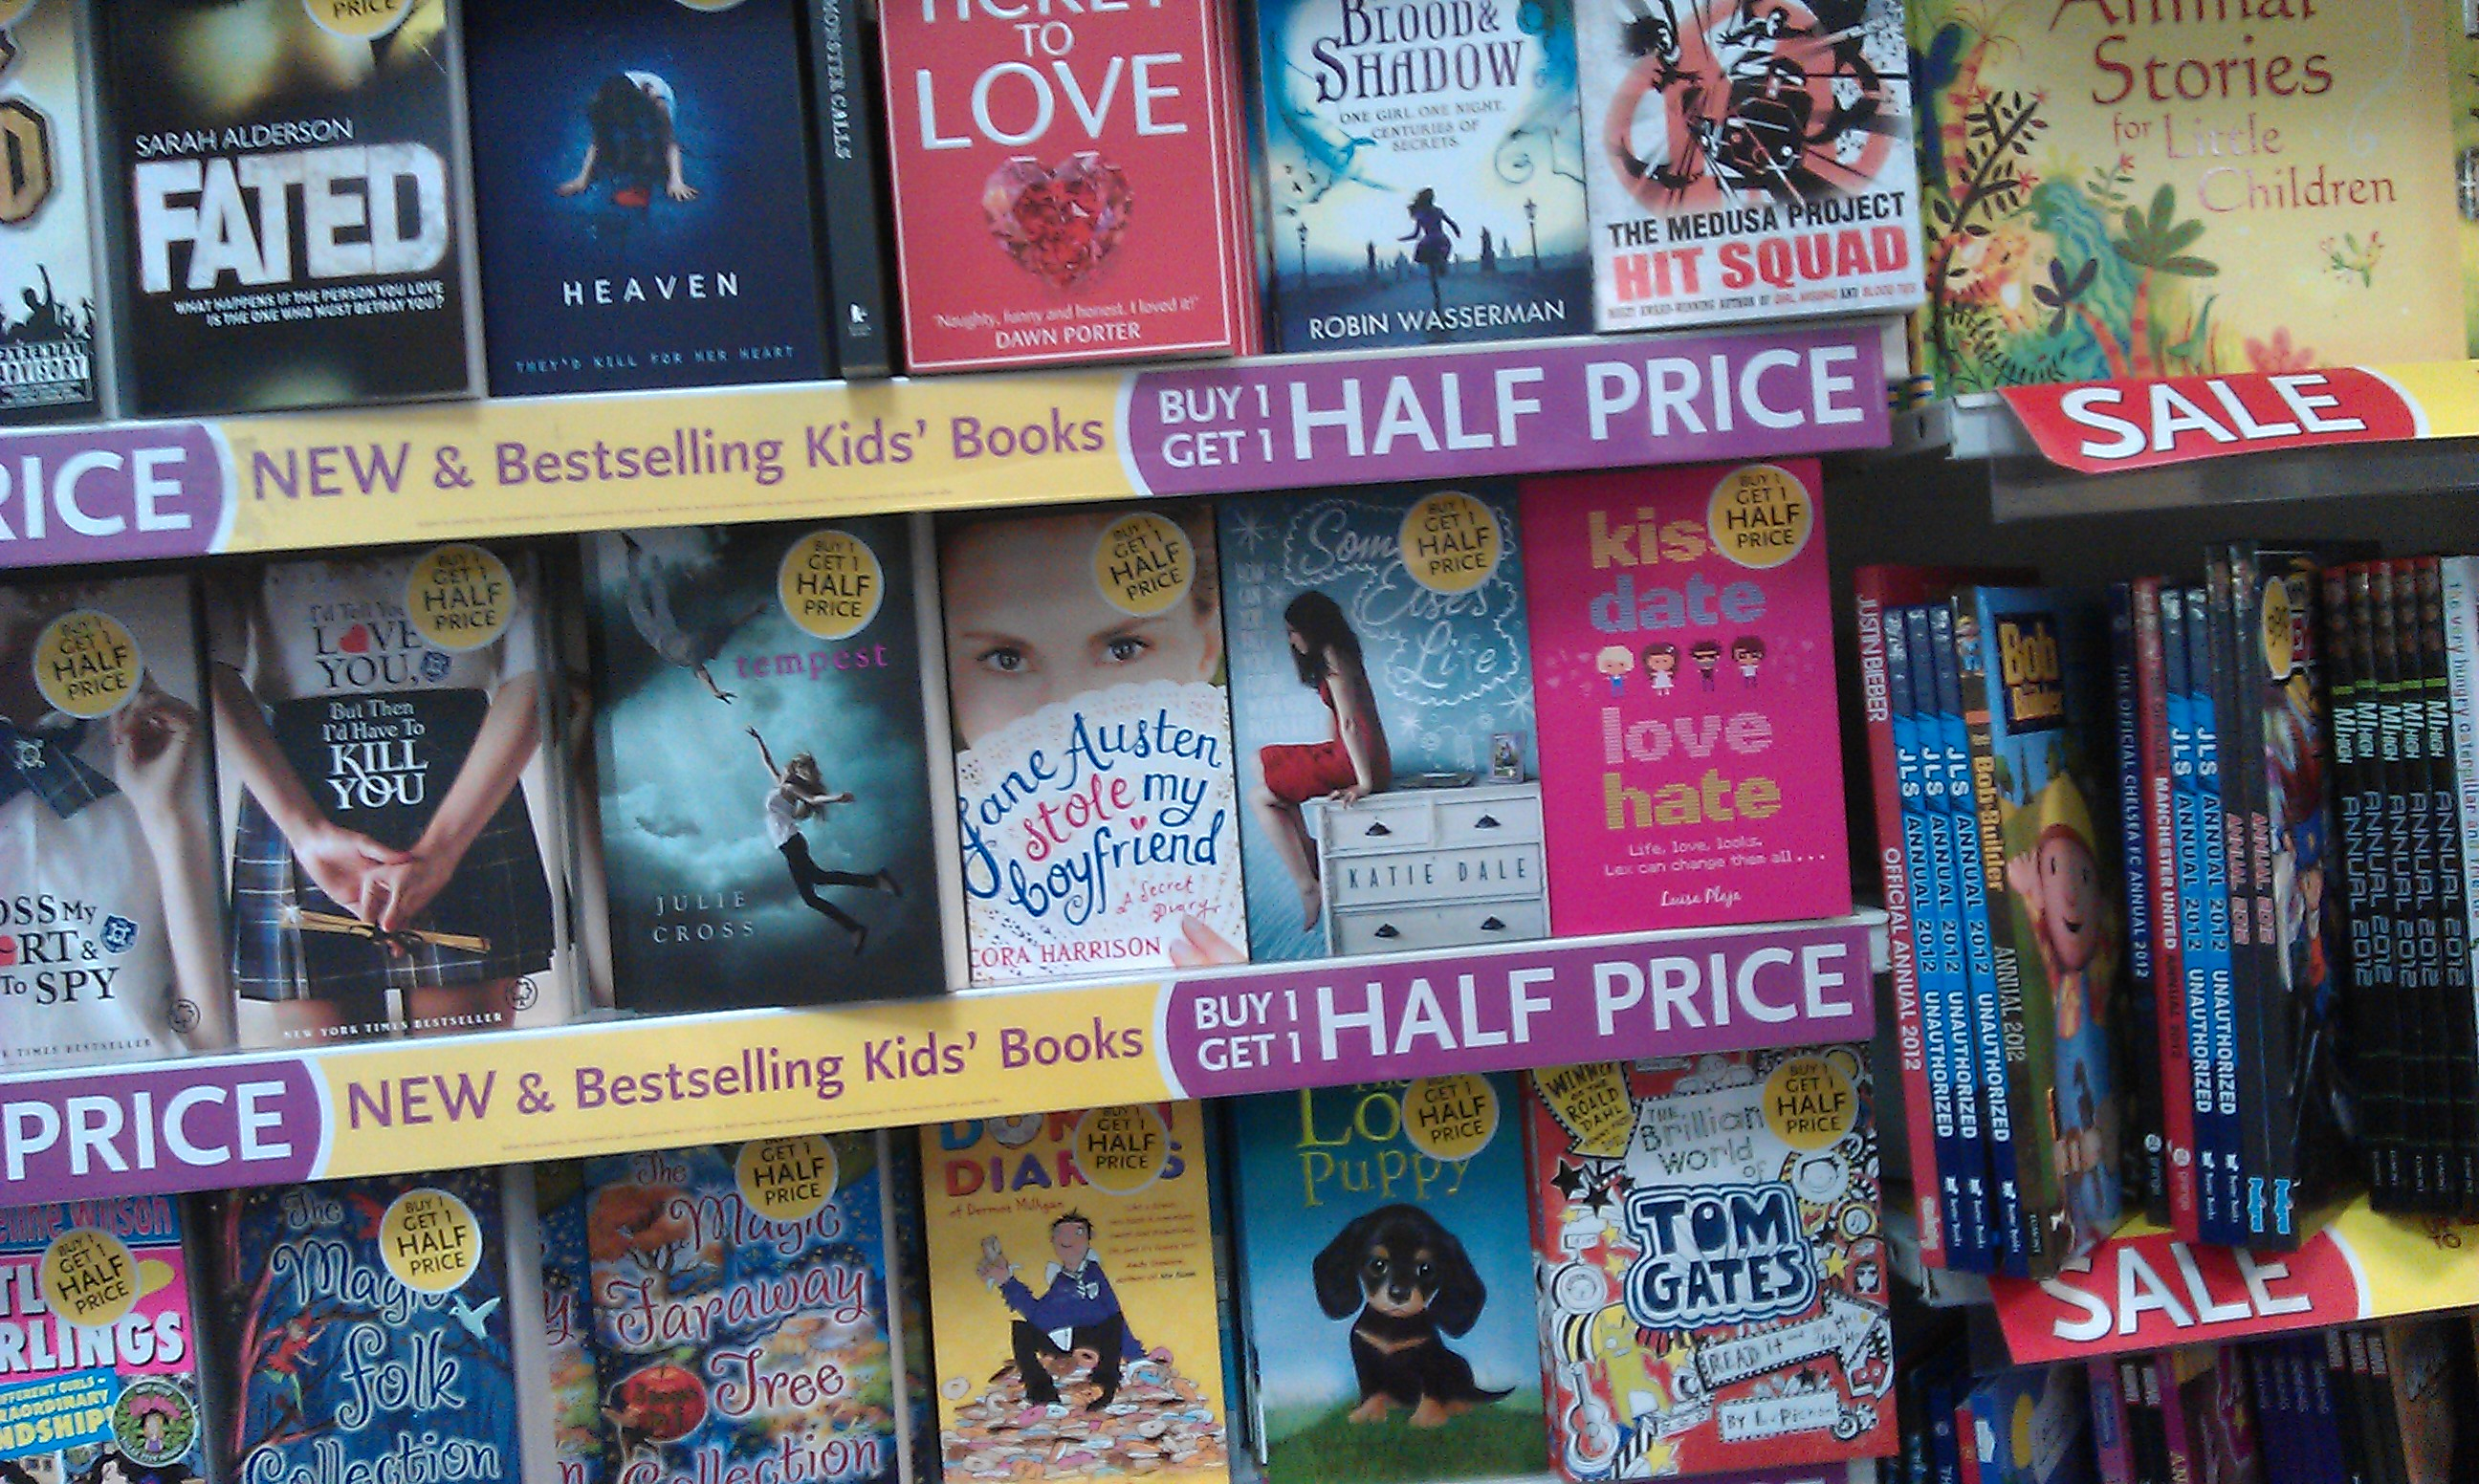 Kiss Date Love Hate in WHSmith